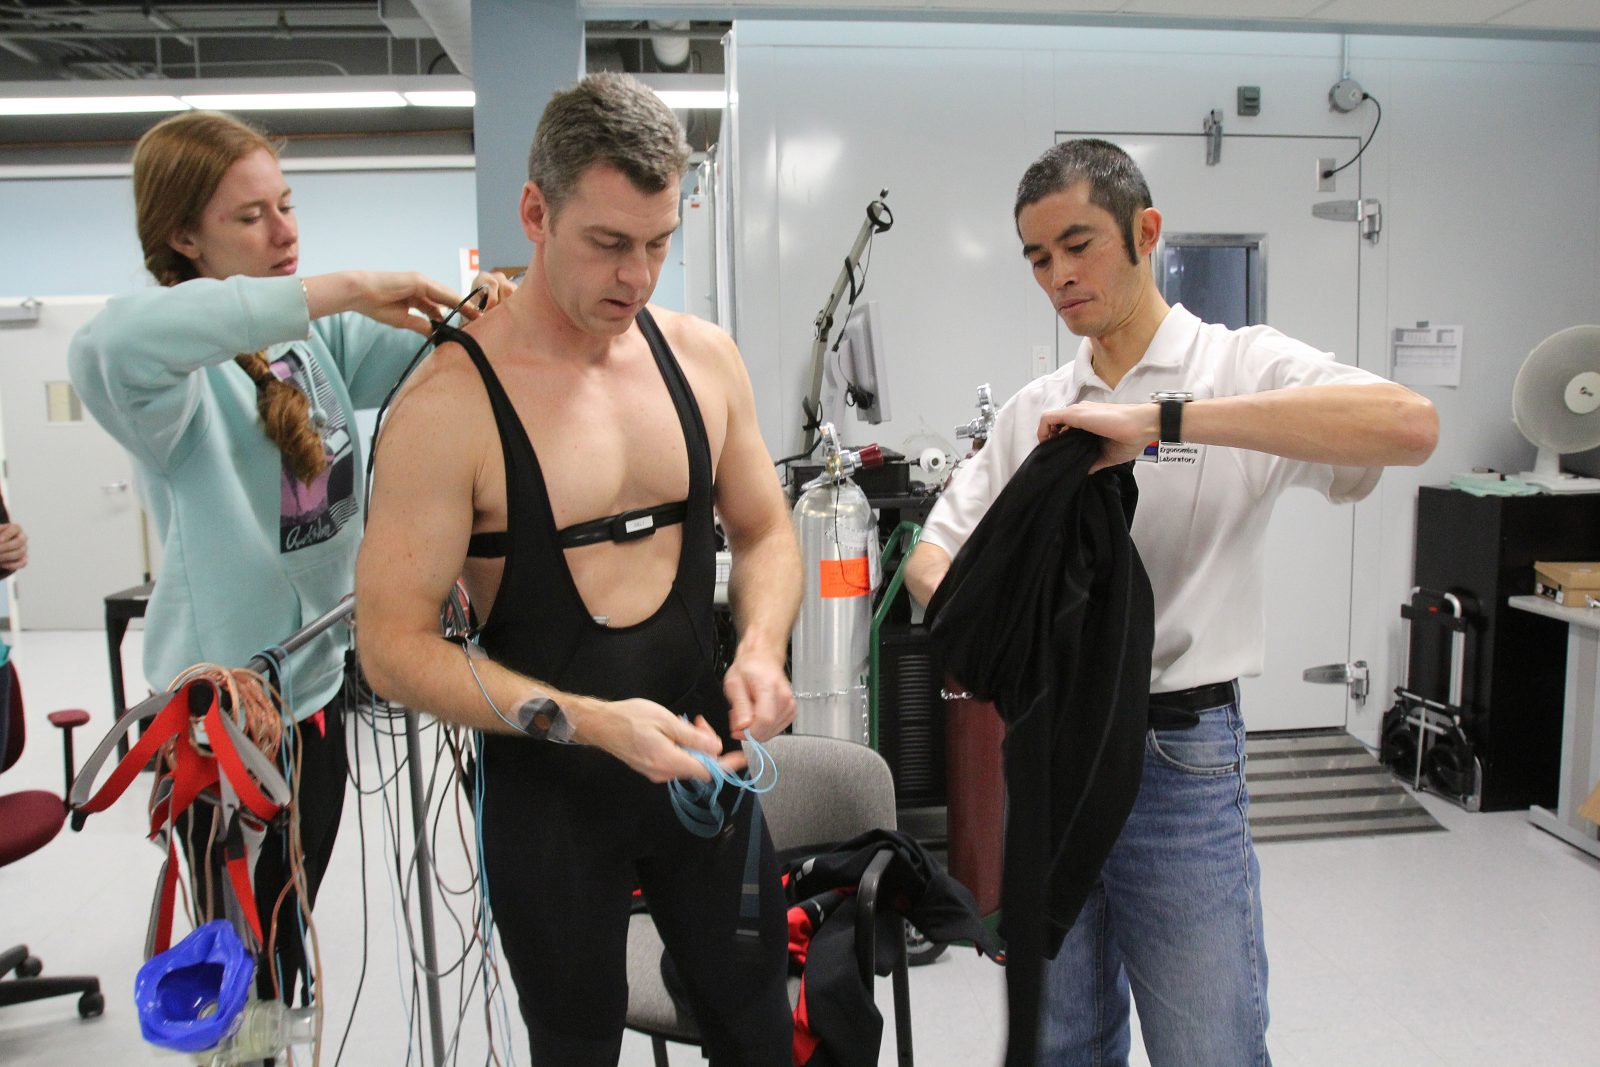 Stephen Cheung, right, and research assistant Tamara Zwaan prepare Mike Taber for a bicycle ride in Cheung's lab at Brock University.